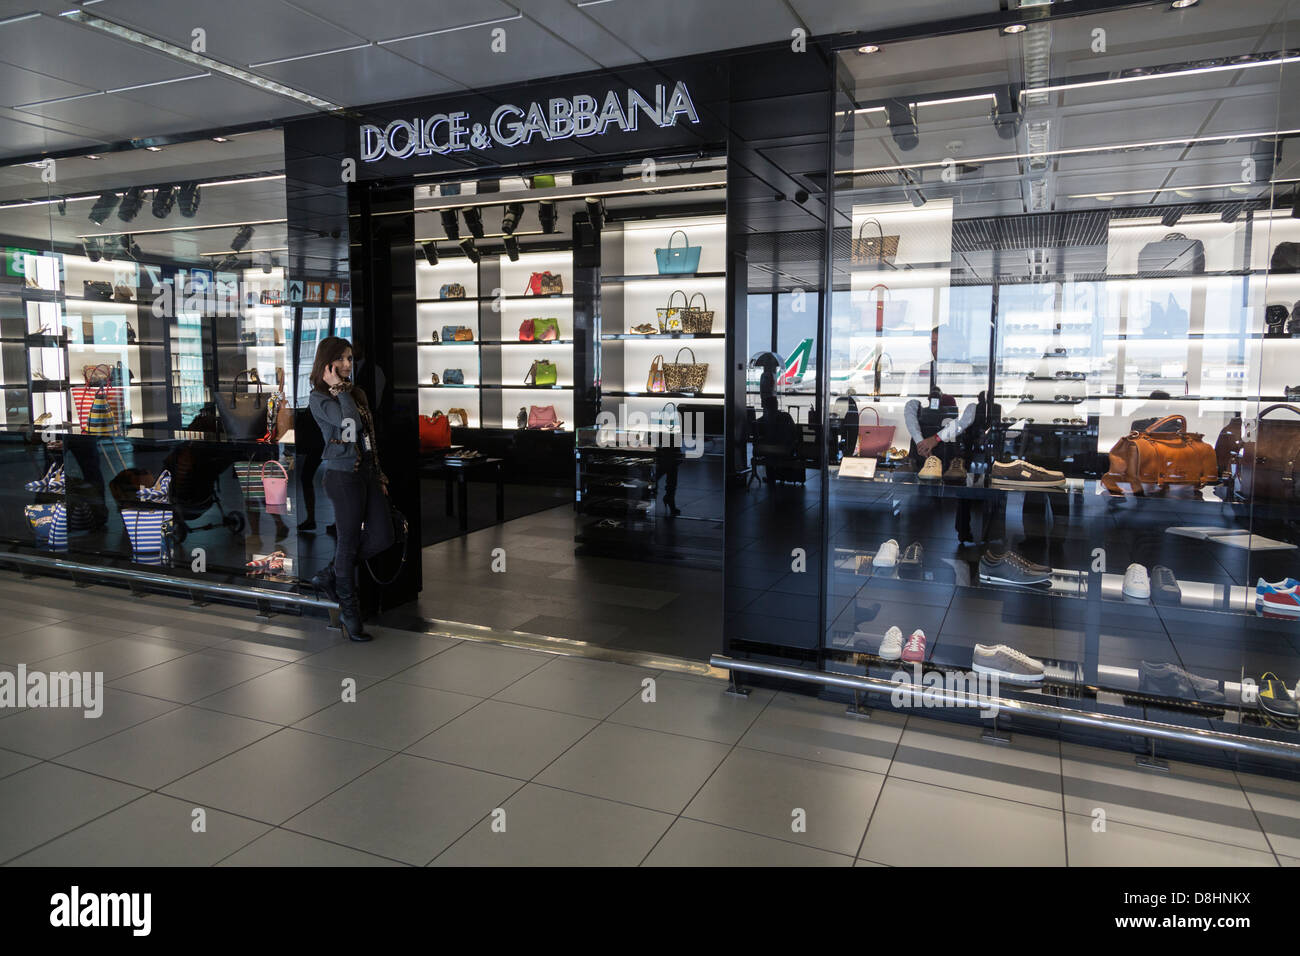 Dolce & Gabbbana shop Fiumicino Airport, Rome, Italy - Stock Image